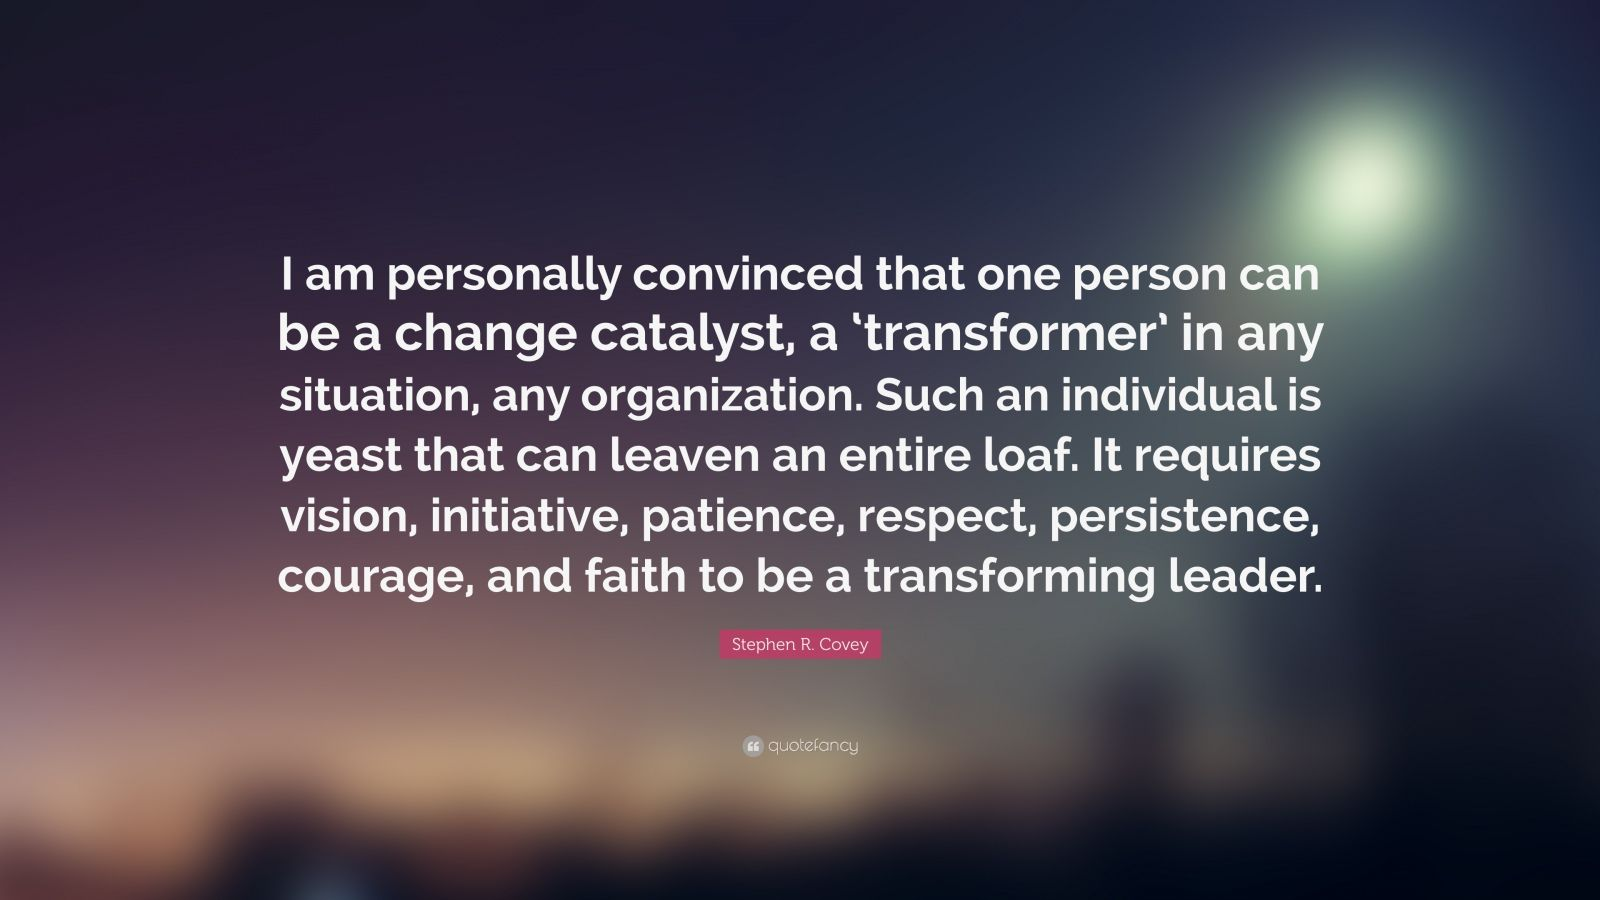 "Stephen R. Covey Quote: ""I am personally convinced that one person can be a change catalyst, a 'transformer' in any situation, any organization. Such an individual is yeast that can leaven an entire loaf. It requires vision, initiative, patience, respect, persistence, courage, and faith to be a transforming leader."""